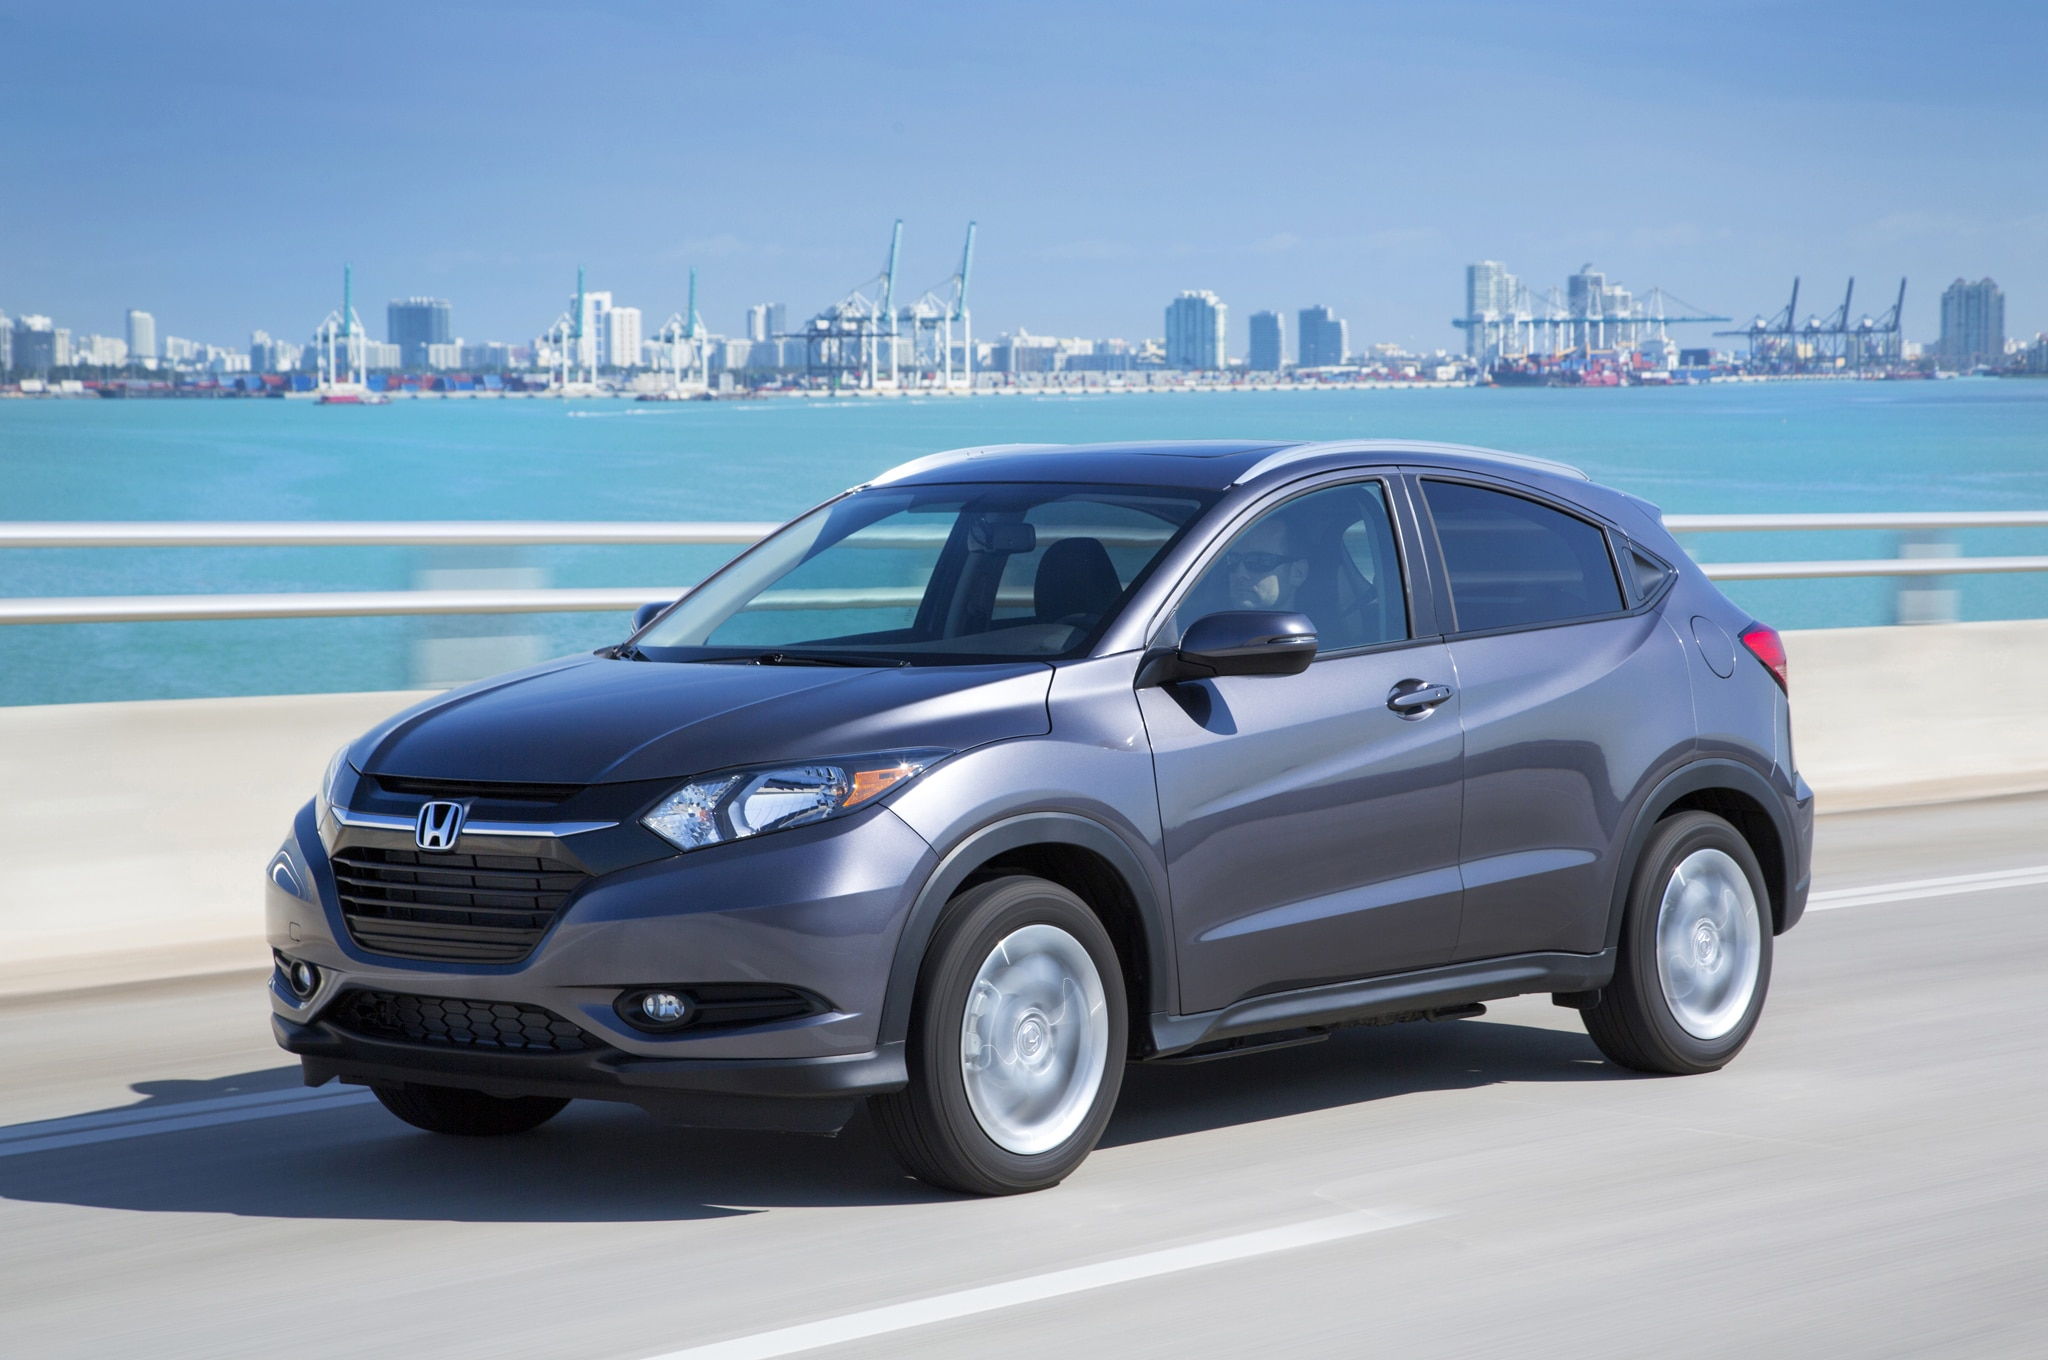 2016 honda fit prices, reviews and pictures u.s. news → Honda fit ...